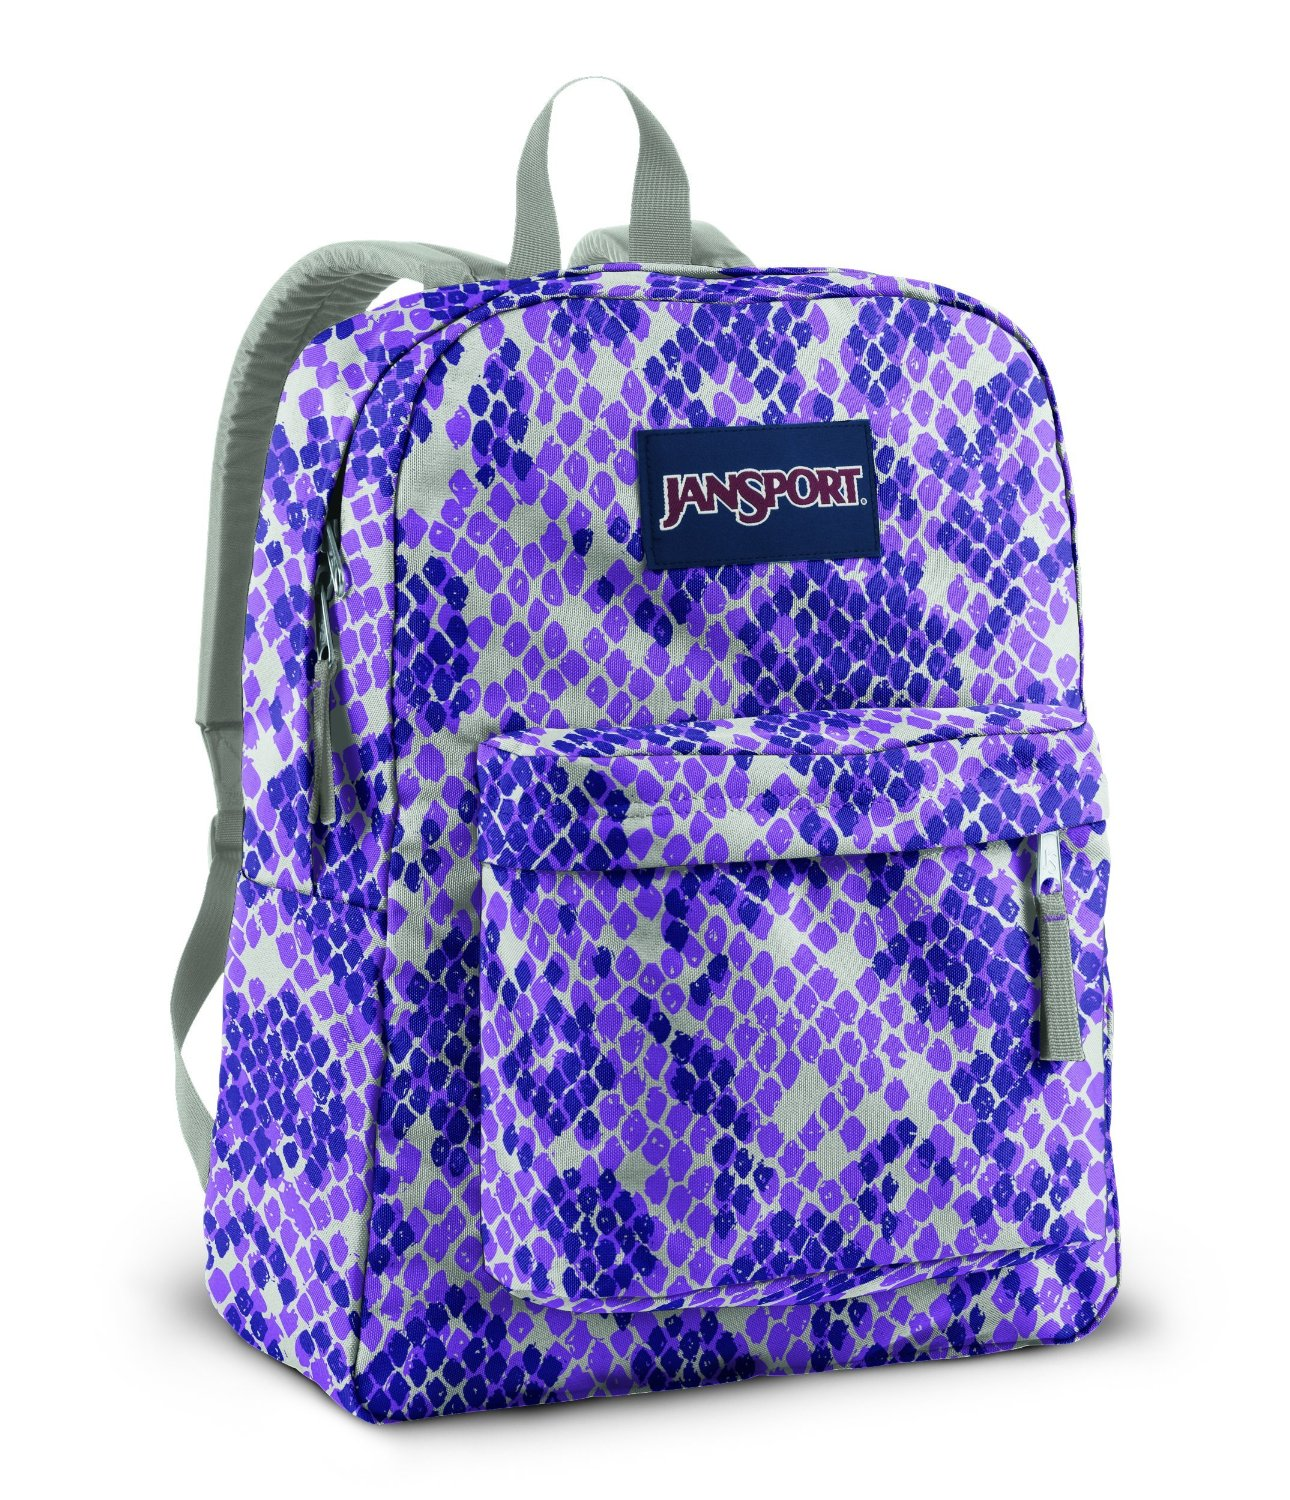 Backpacks For Girls Jansport 2Bs4153m